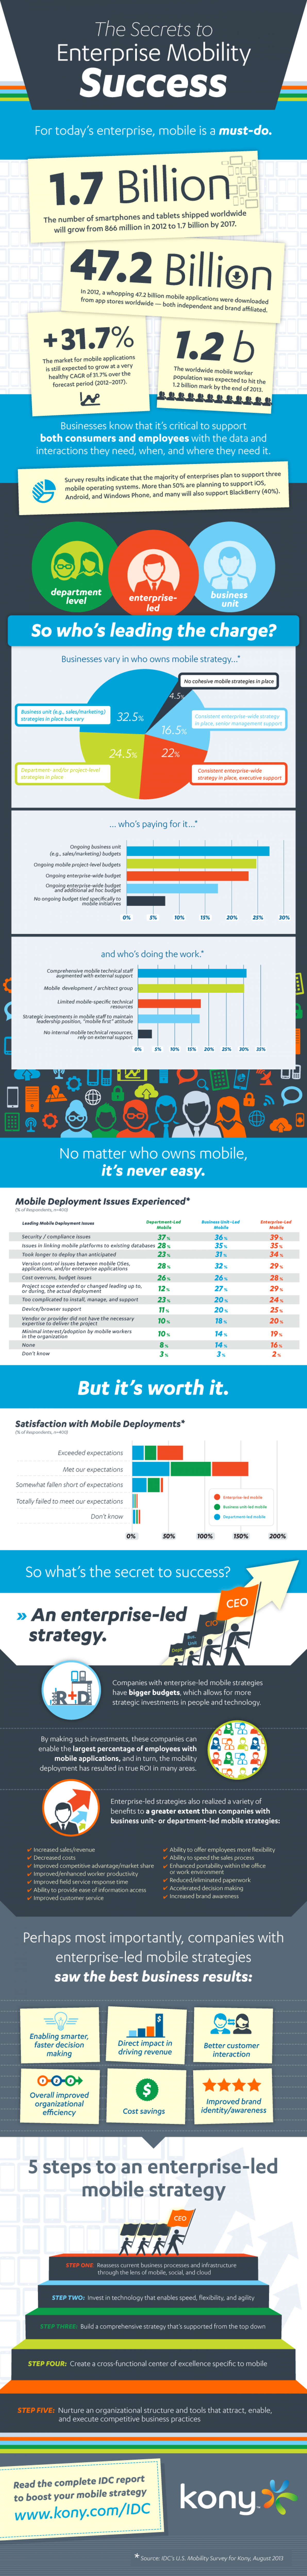 The Secrets to Enterprise Mobility Success Infographic